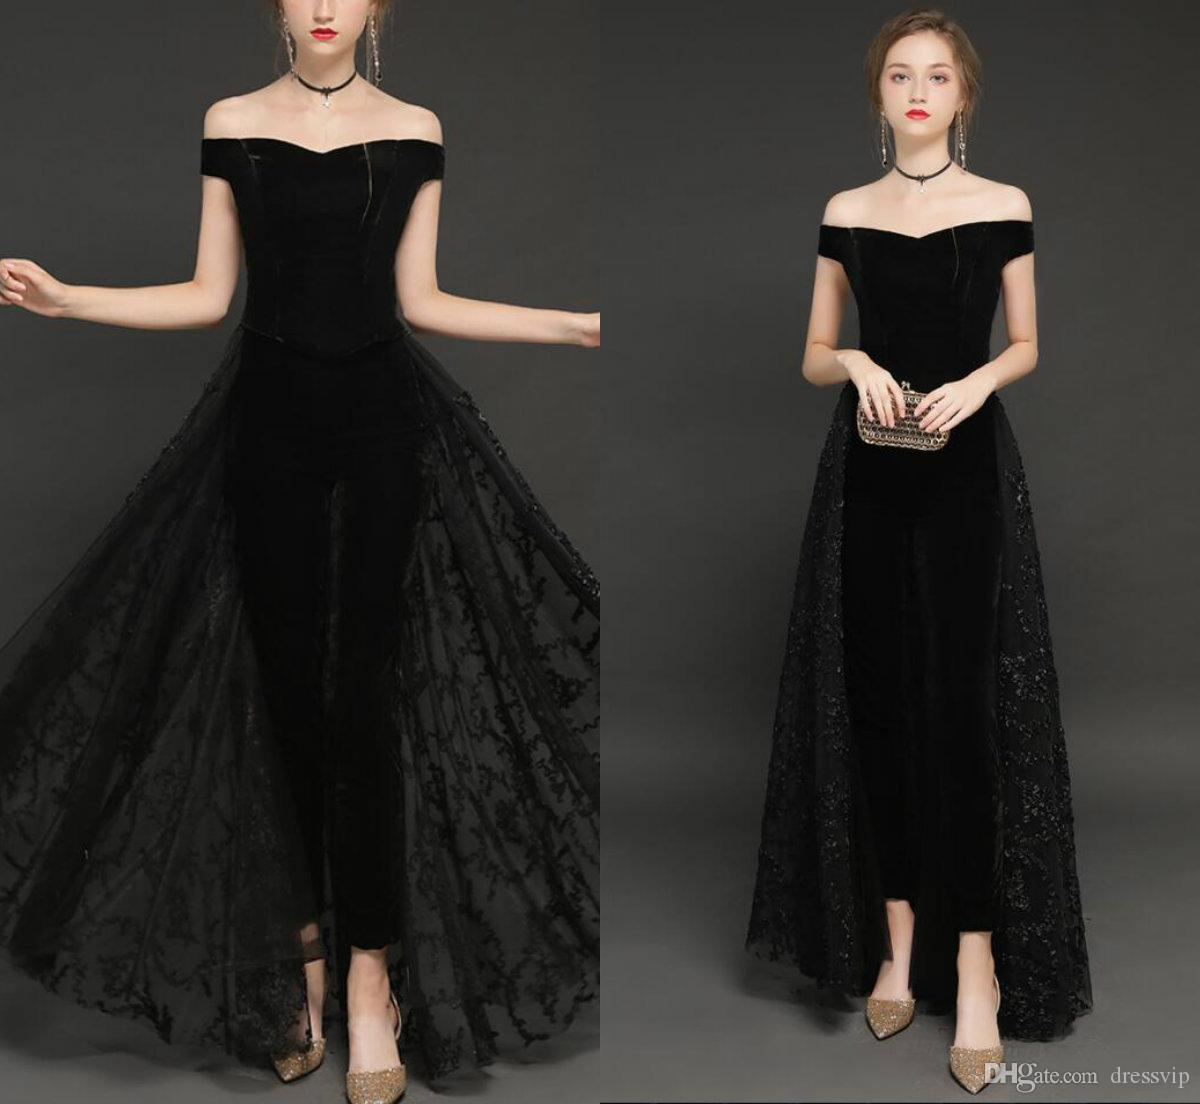 4548d8756d9 Black Women Jumpsuit With Detachable Long Train Off The Shoulder Lace  Appliqued Zuhair Murad Prom Dress Floor Length Formal Evening Gowns Long  Sleeved ...